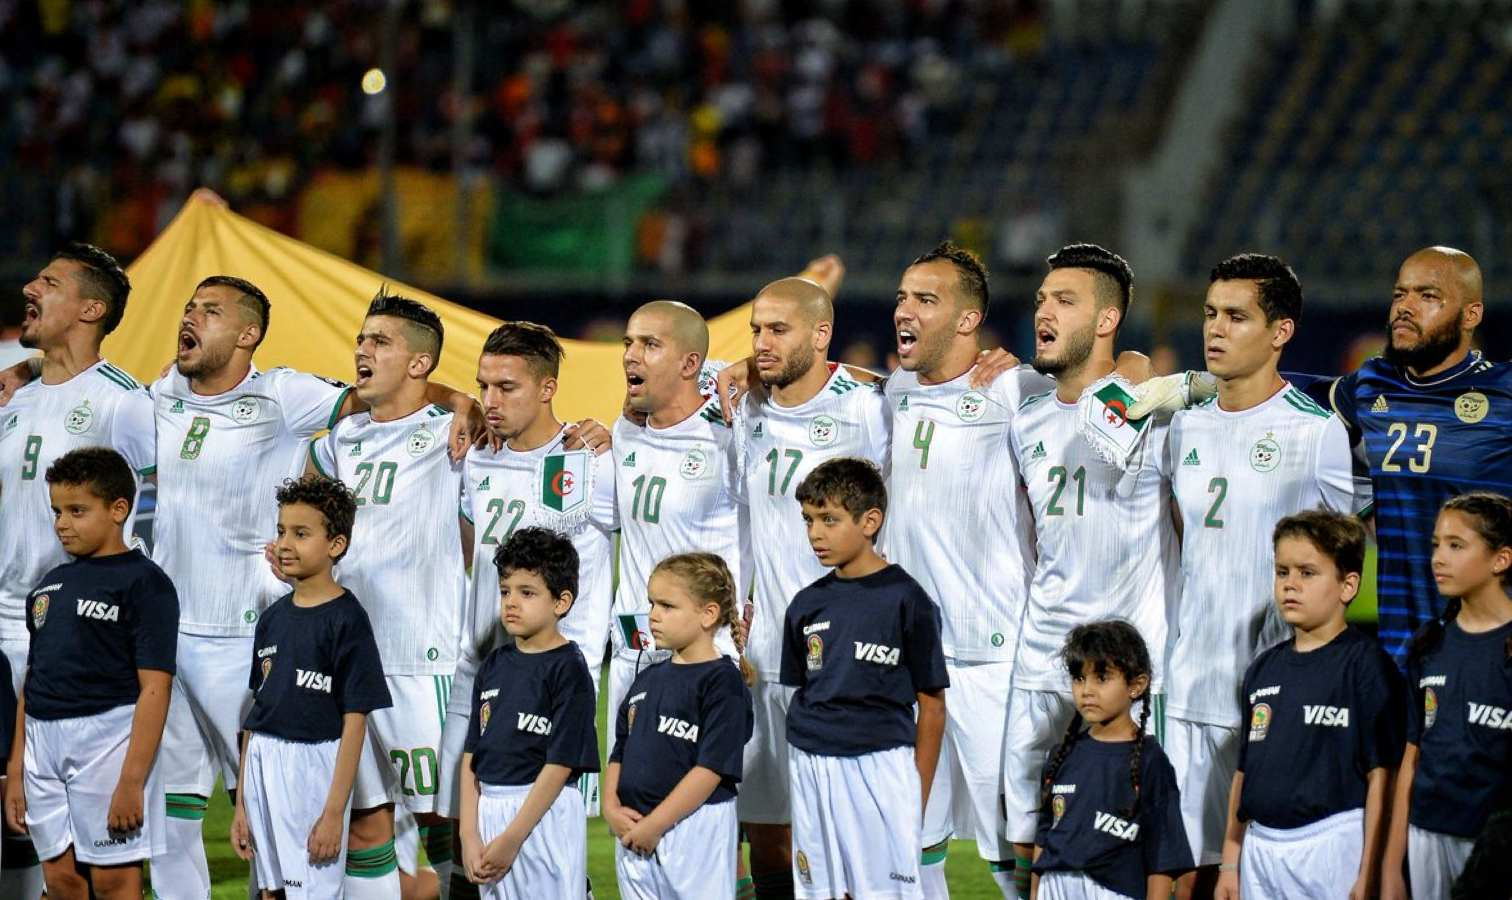 hymne algerien chant fort